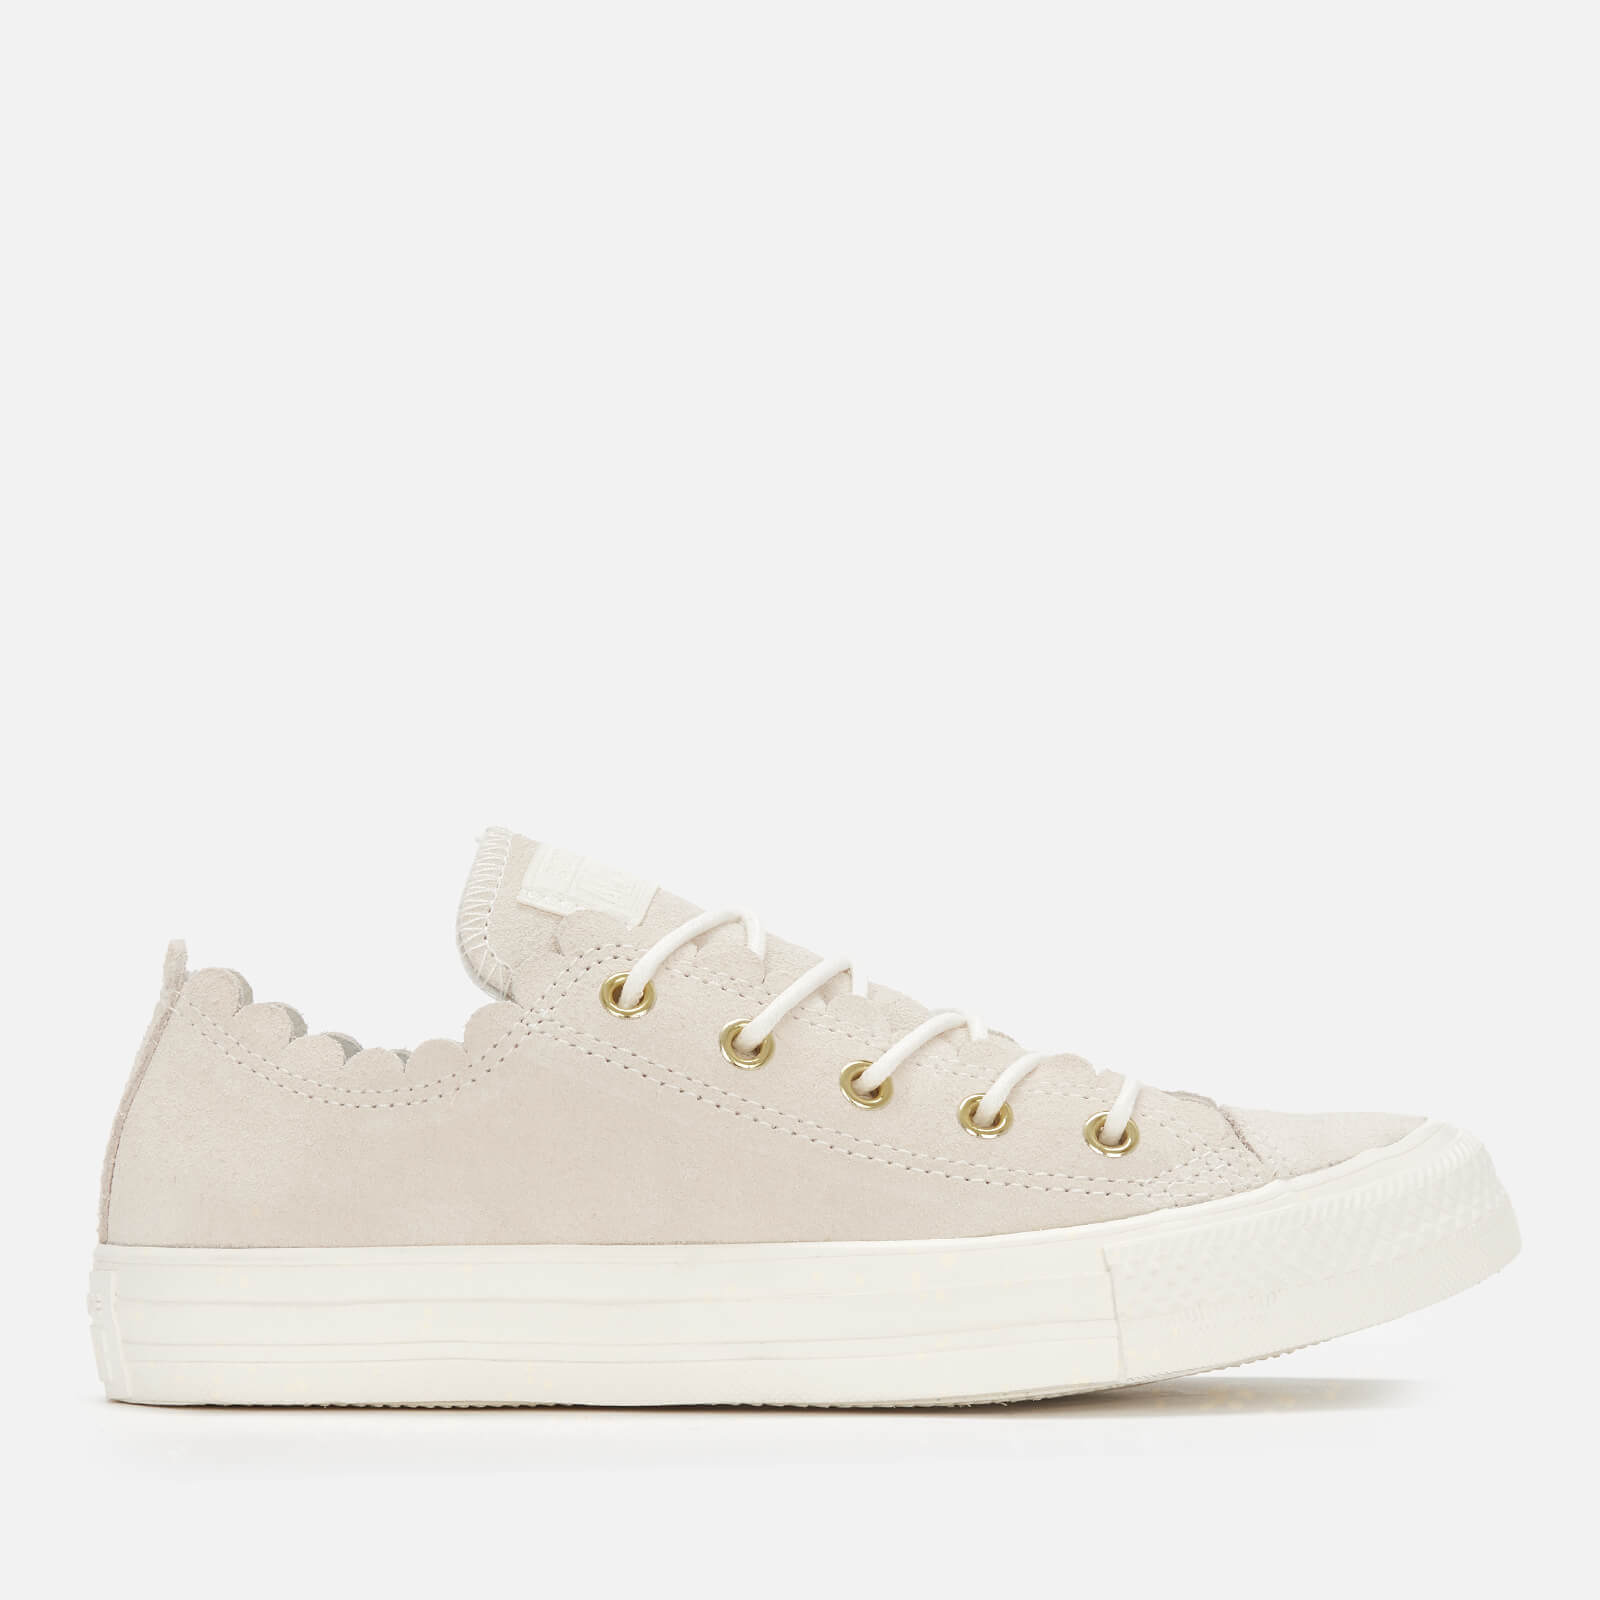 0496b879b1ed Converse Women s Chuck Taylor All Star Scalloped Edge Ox Trainers -  Egret Gold Womens Footwear